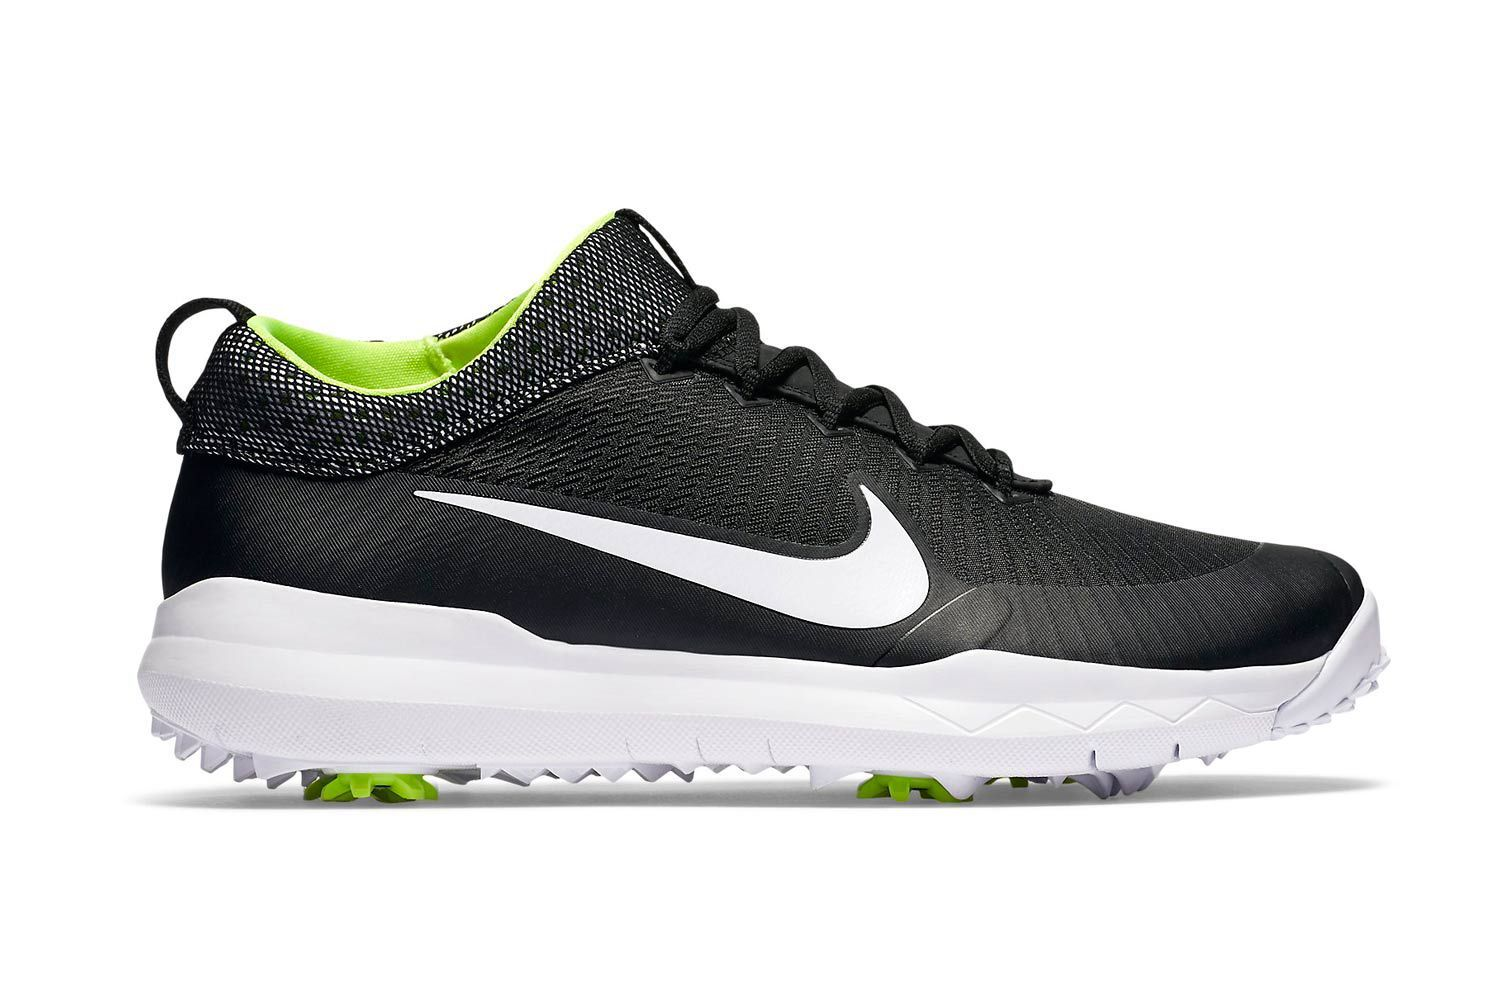 b126024a0e Nike Releases Its Free-Inspired F1 Premiere Golf Shoe | Cool Golf ...